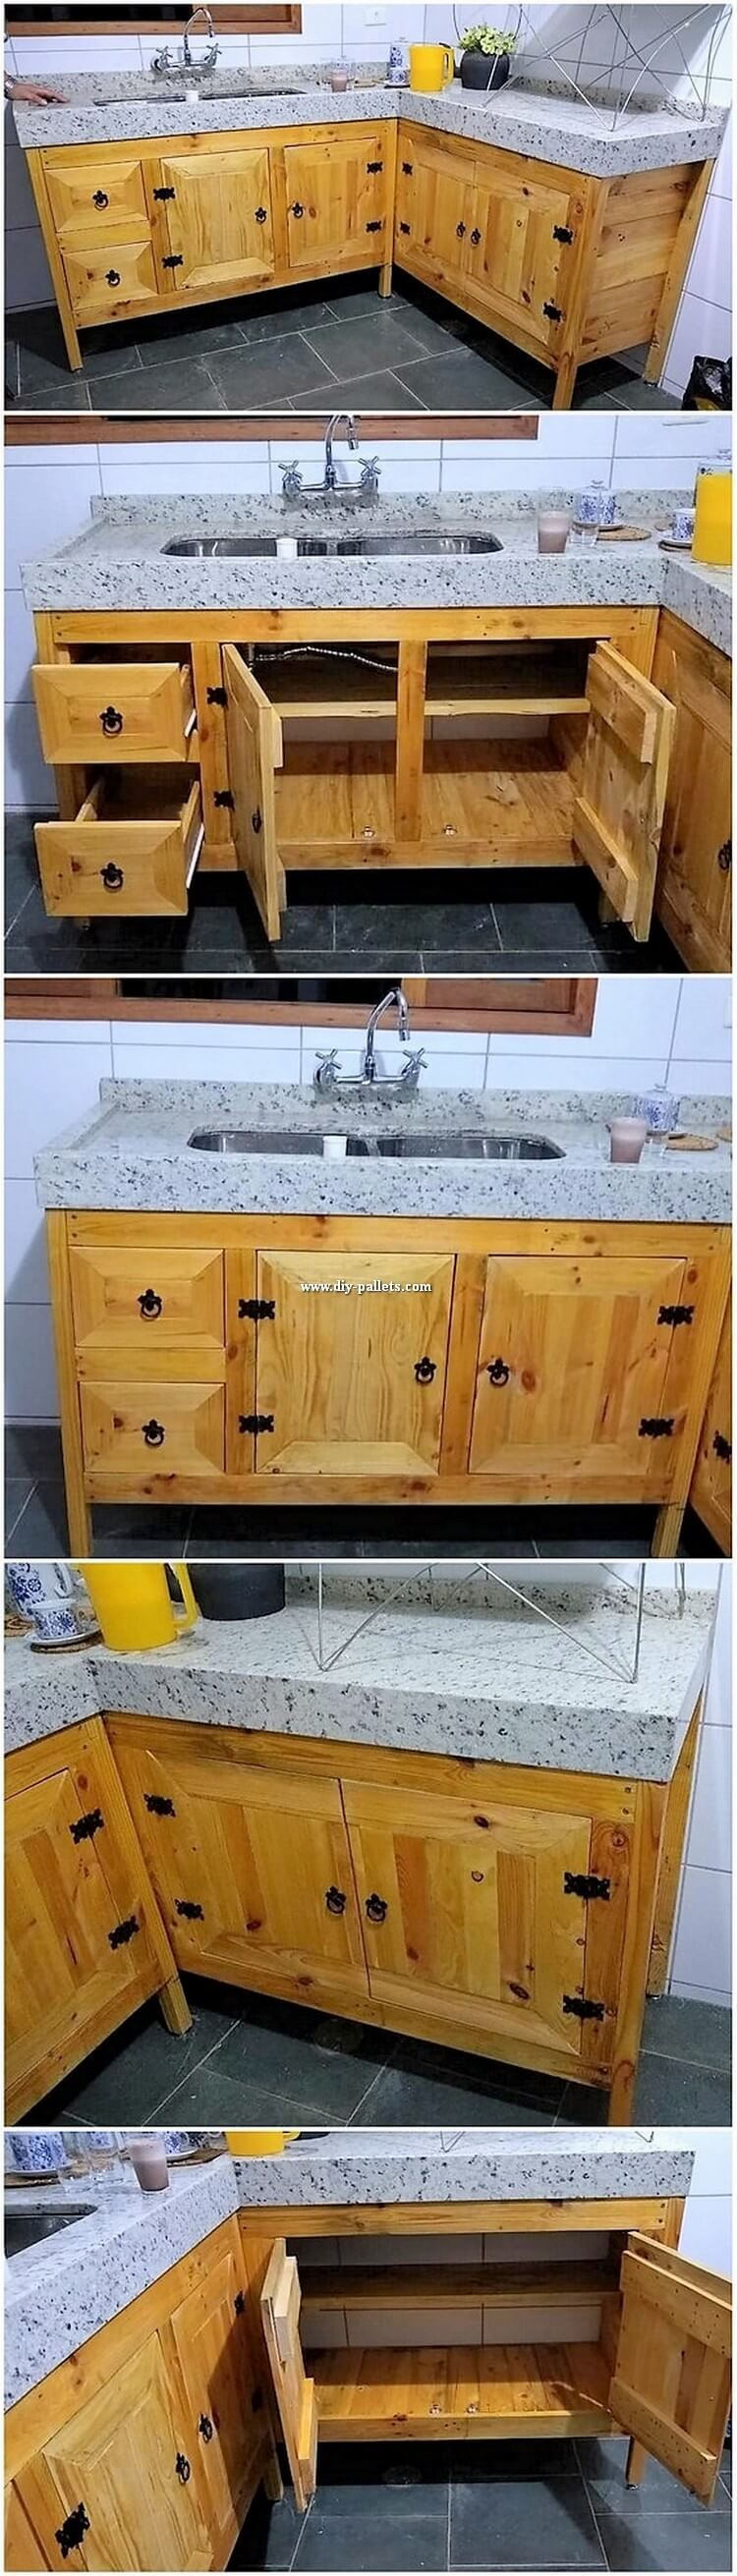 Pallet Sink with Cabinets